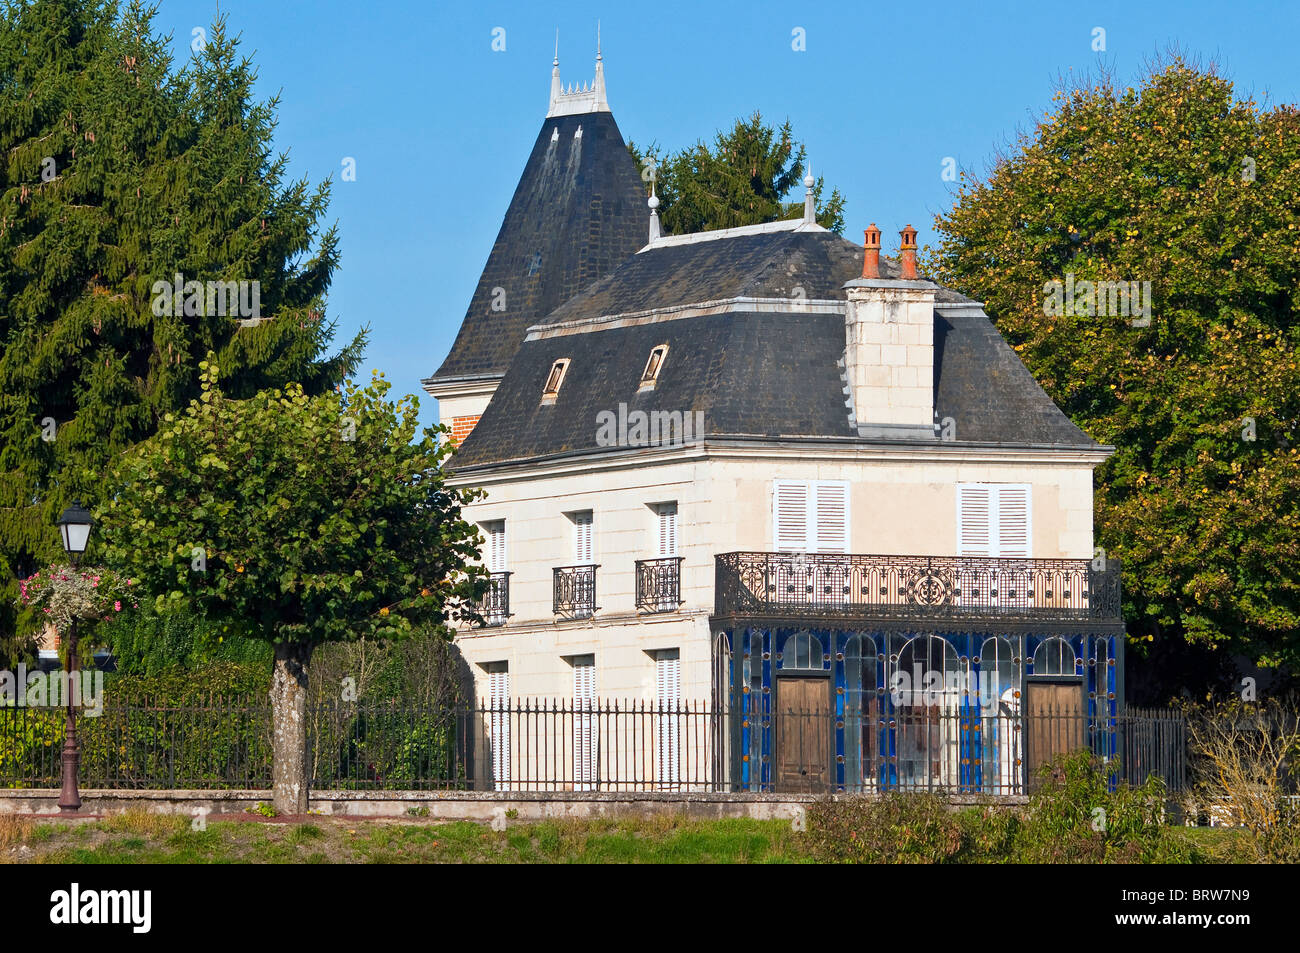 Riverside house with glazed front conservatory and balcony - sud-Touraine, France. Stock Photo